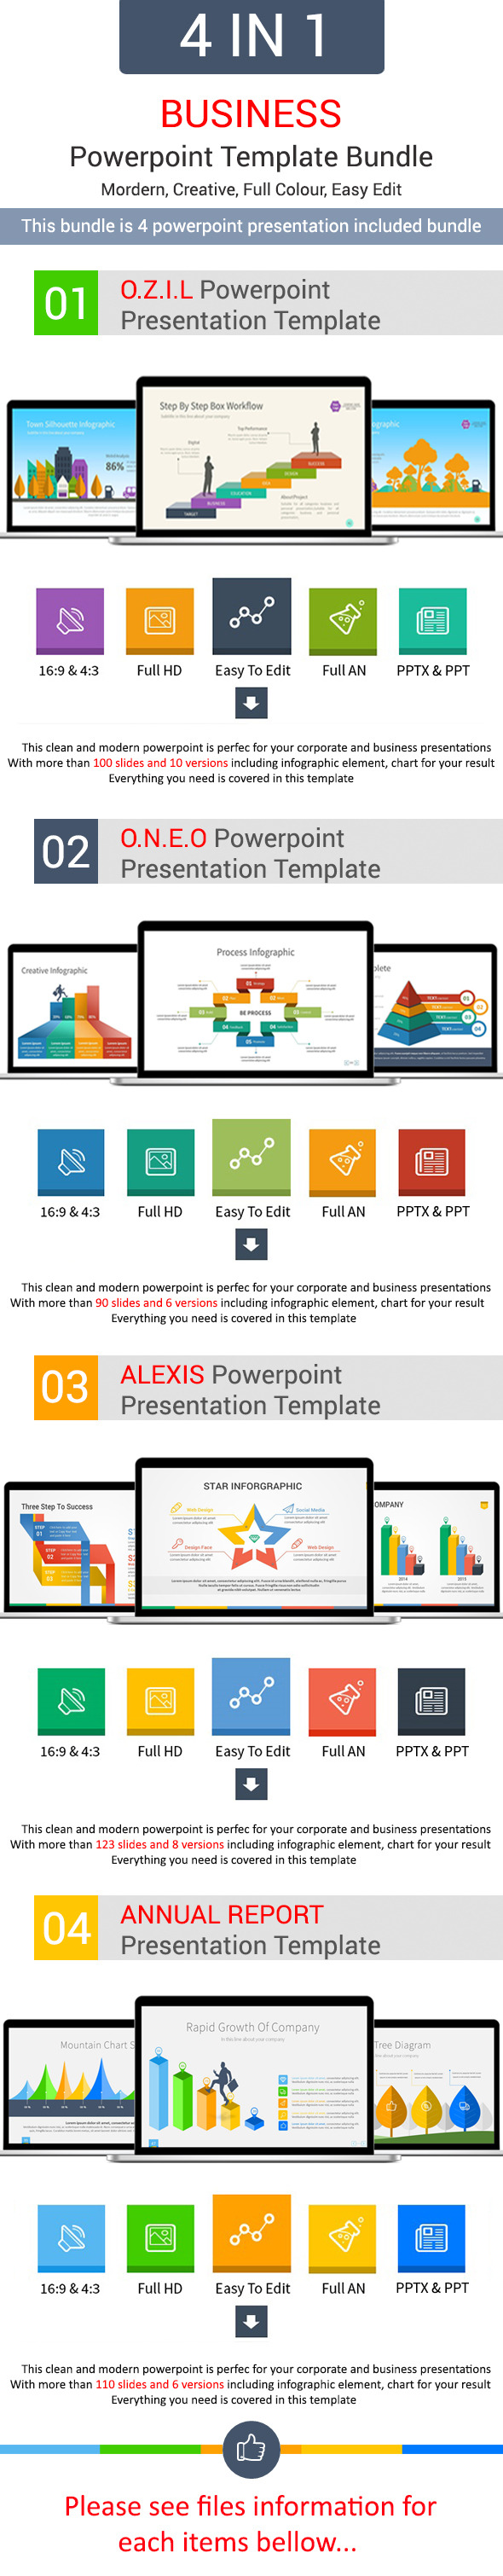 GraphicRiver 4 in 1 Bundle Powerpoint Template 11147935